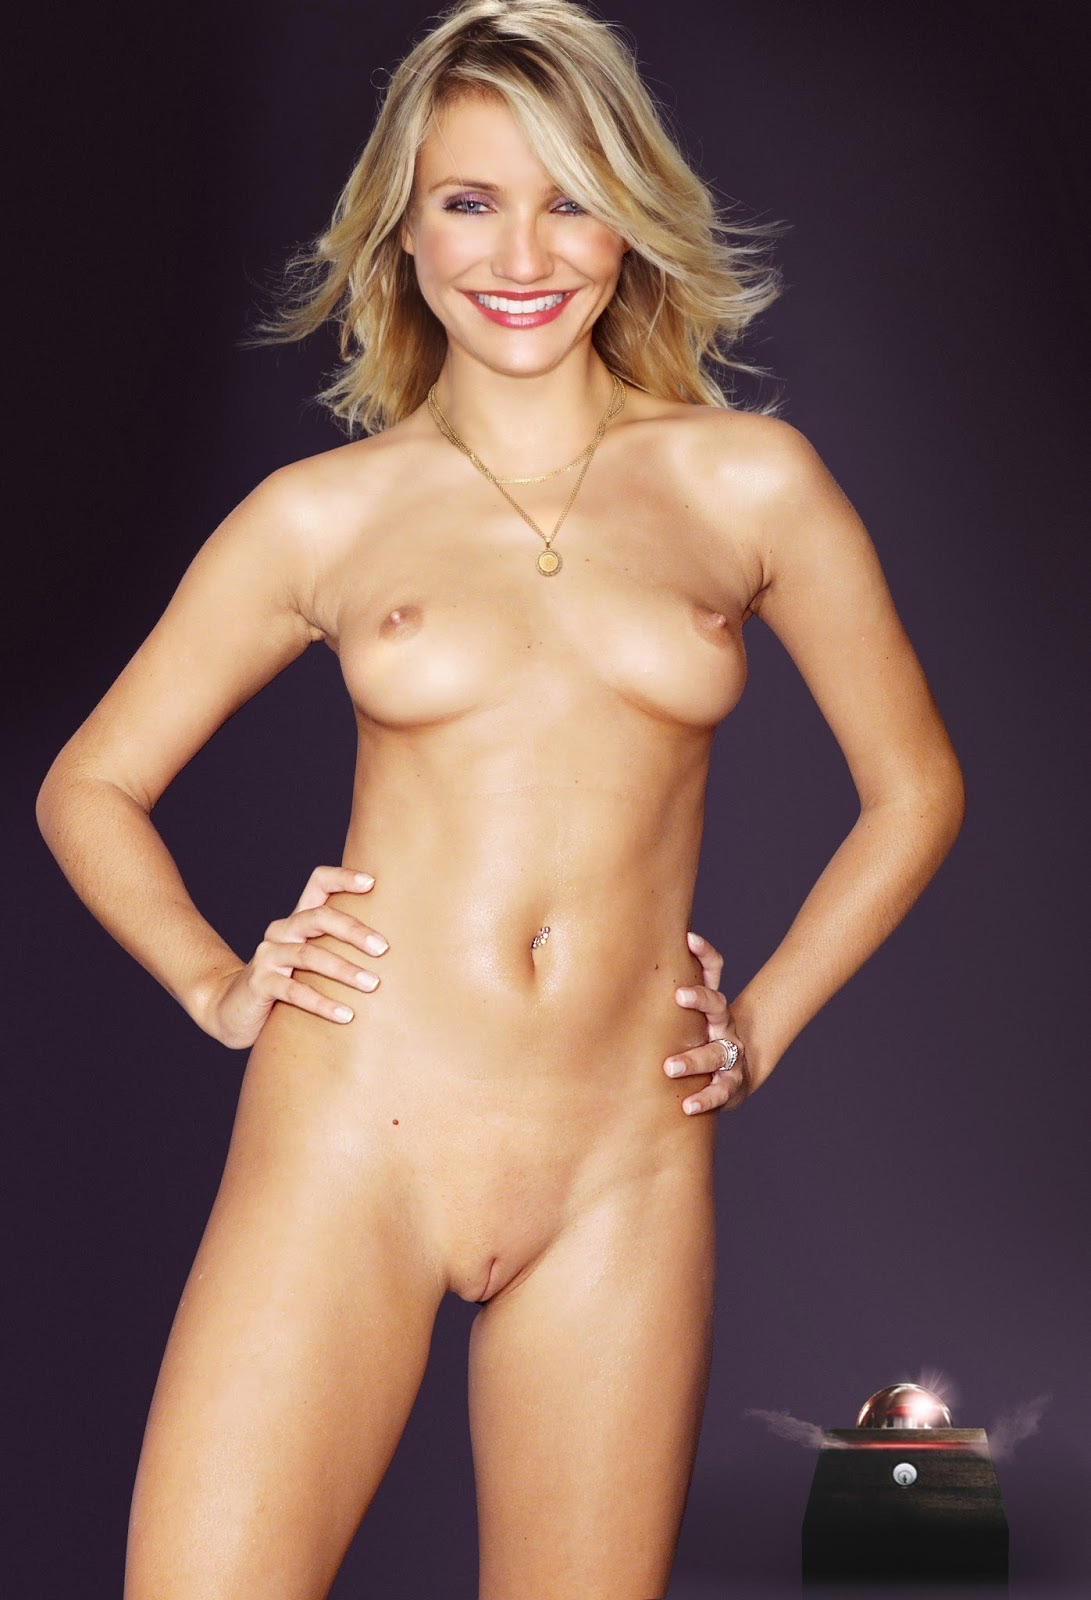 Cameron Diaz Nude Naked Xxx Hot Pussy Sex Images 53 Pics-8147